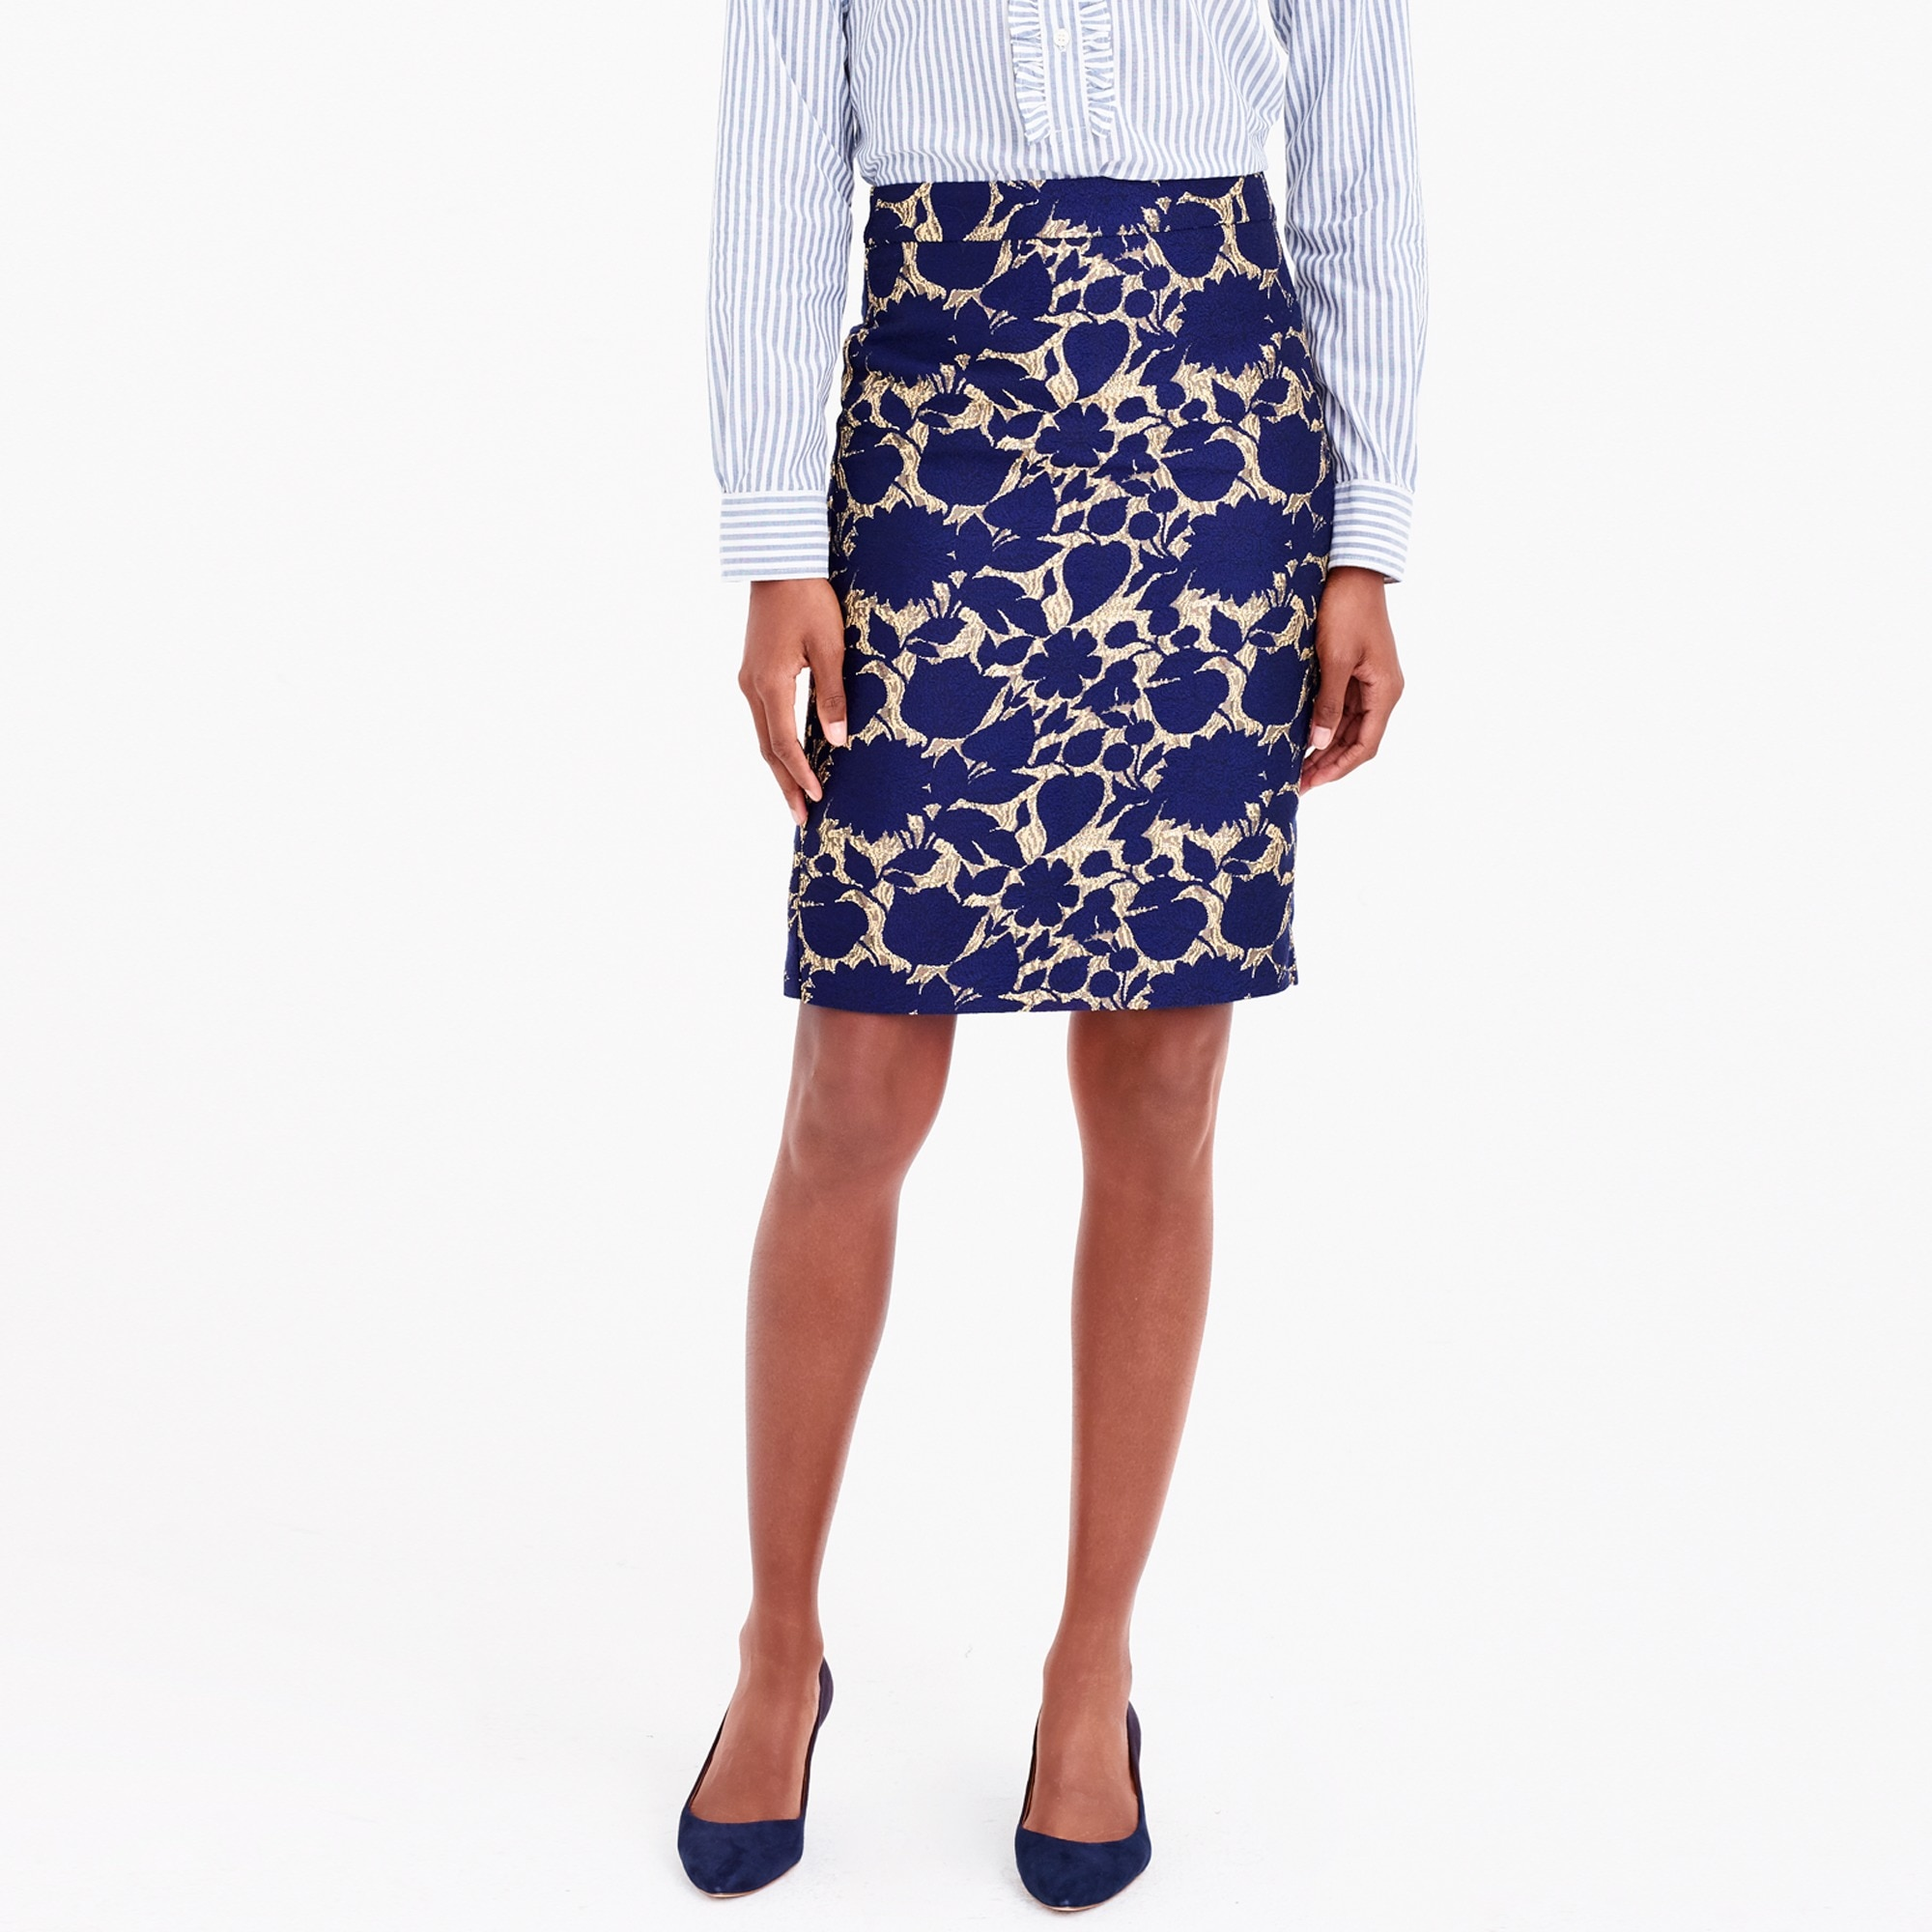 Image 1 for Metallic jacquard pencil skirt